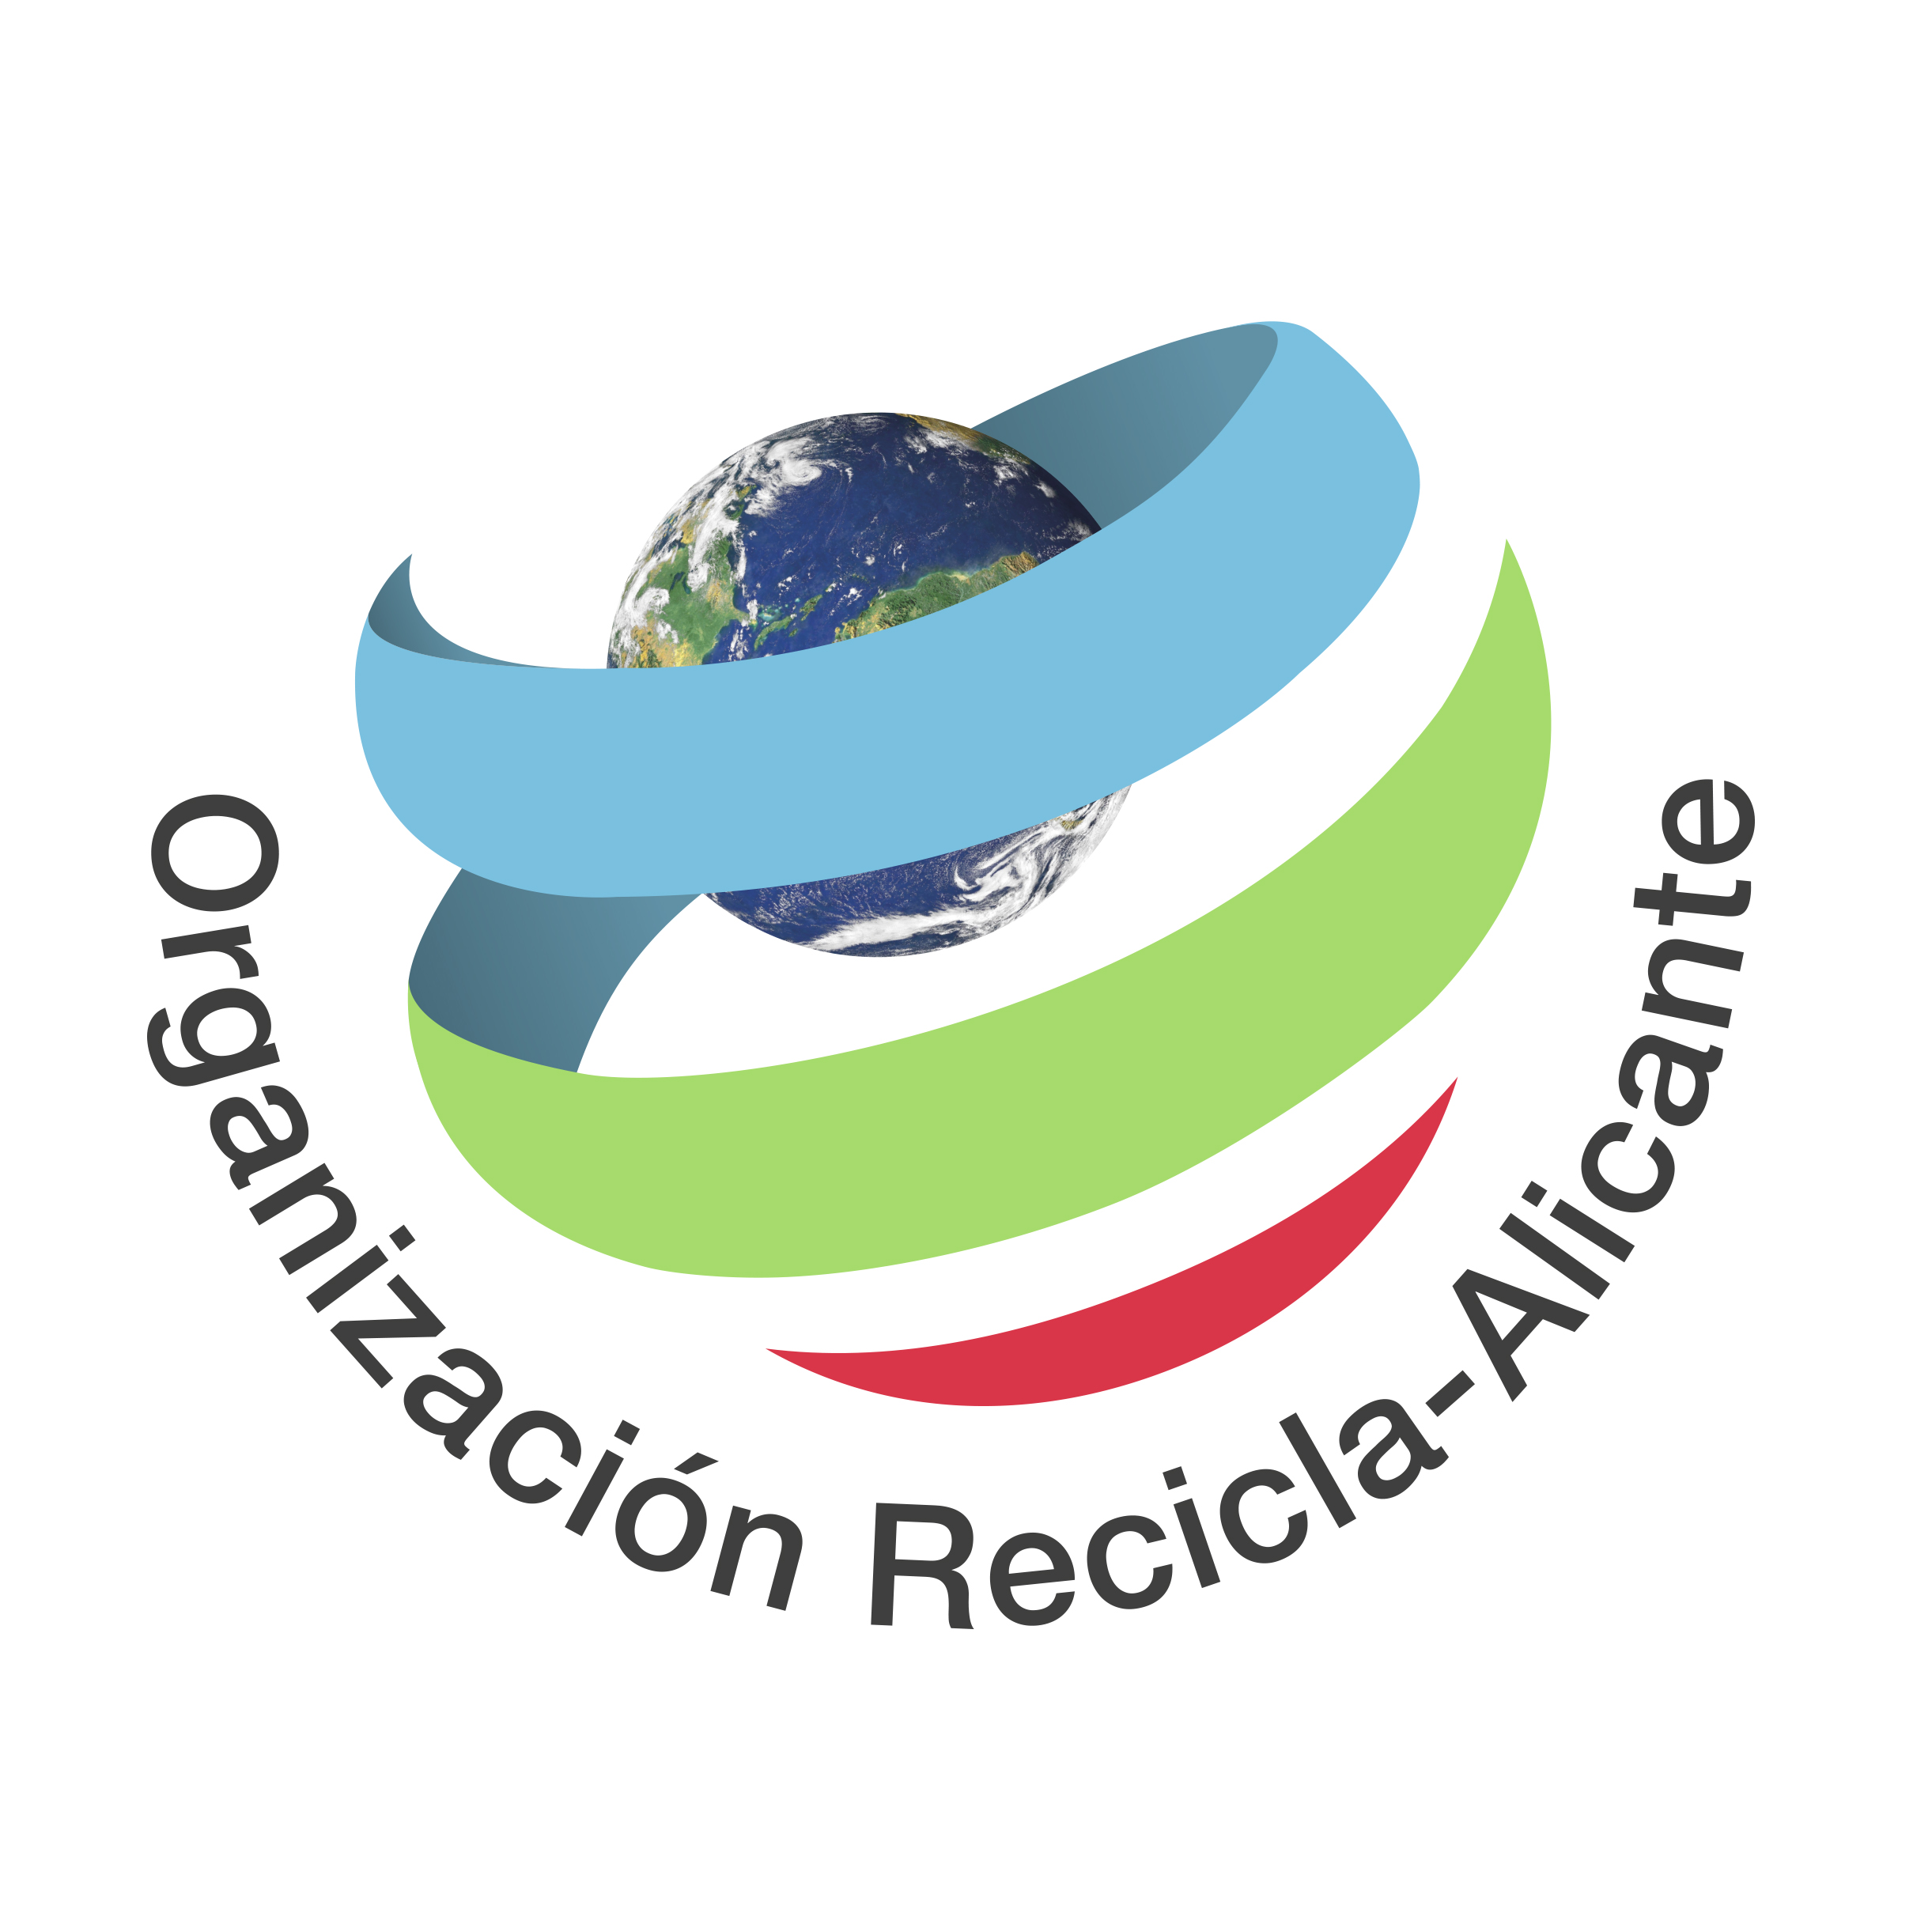 https://www.reciclaalicante.org/wp-content/uploads/2021/01/IMG_5908.jpg